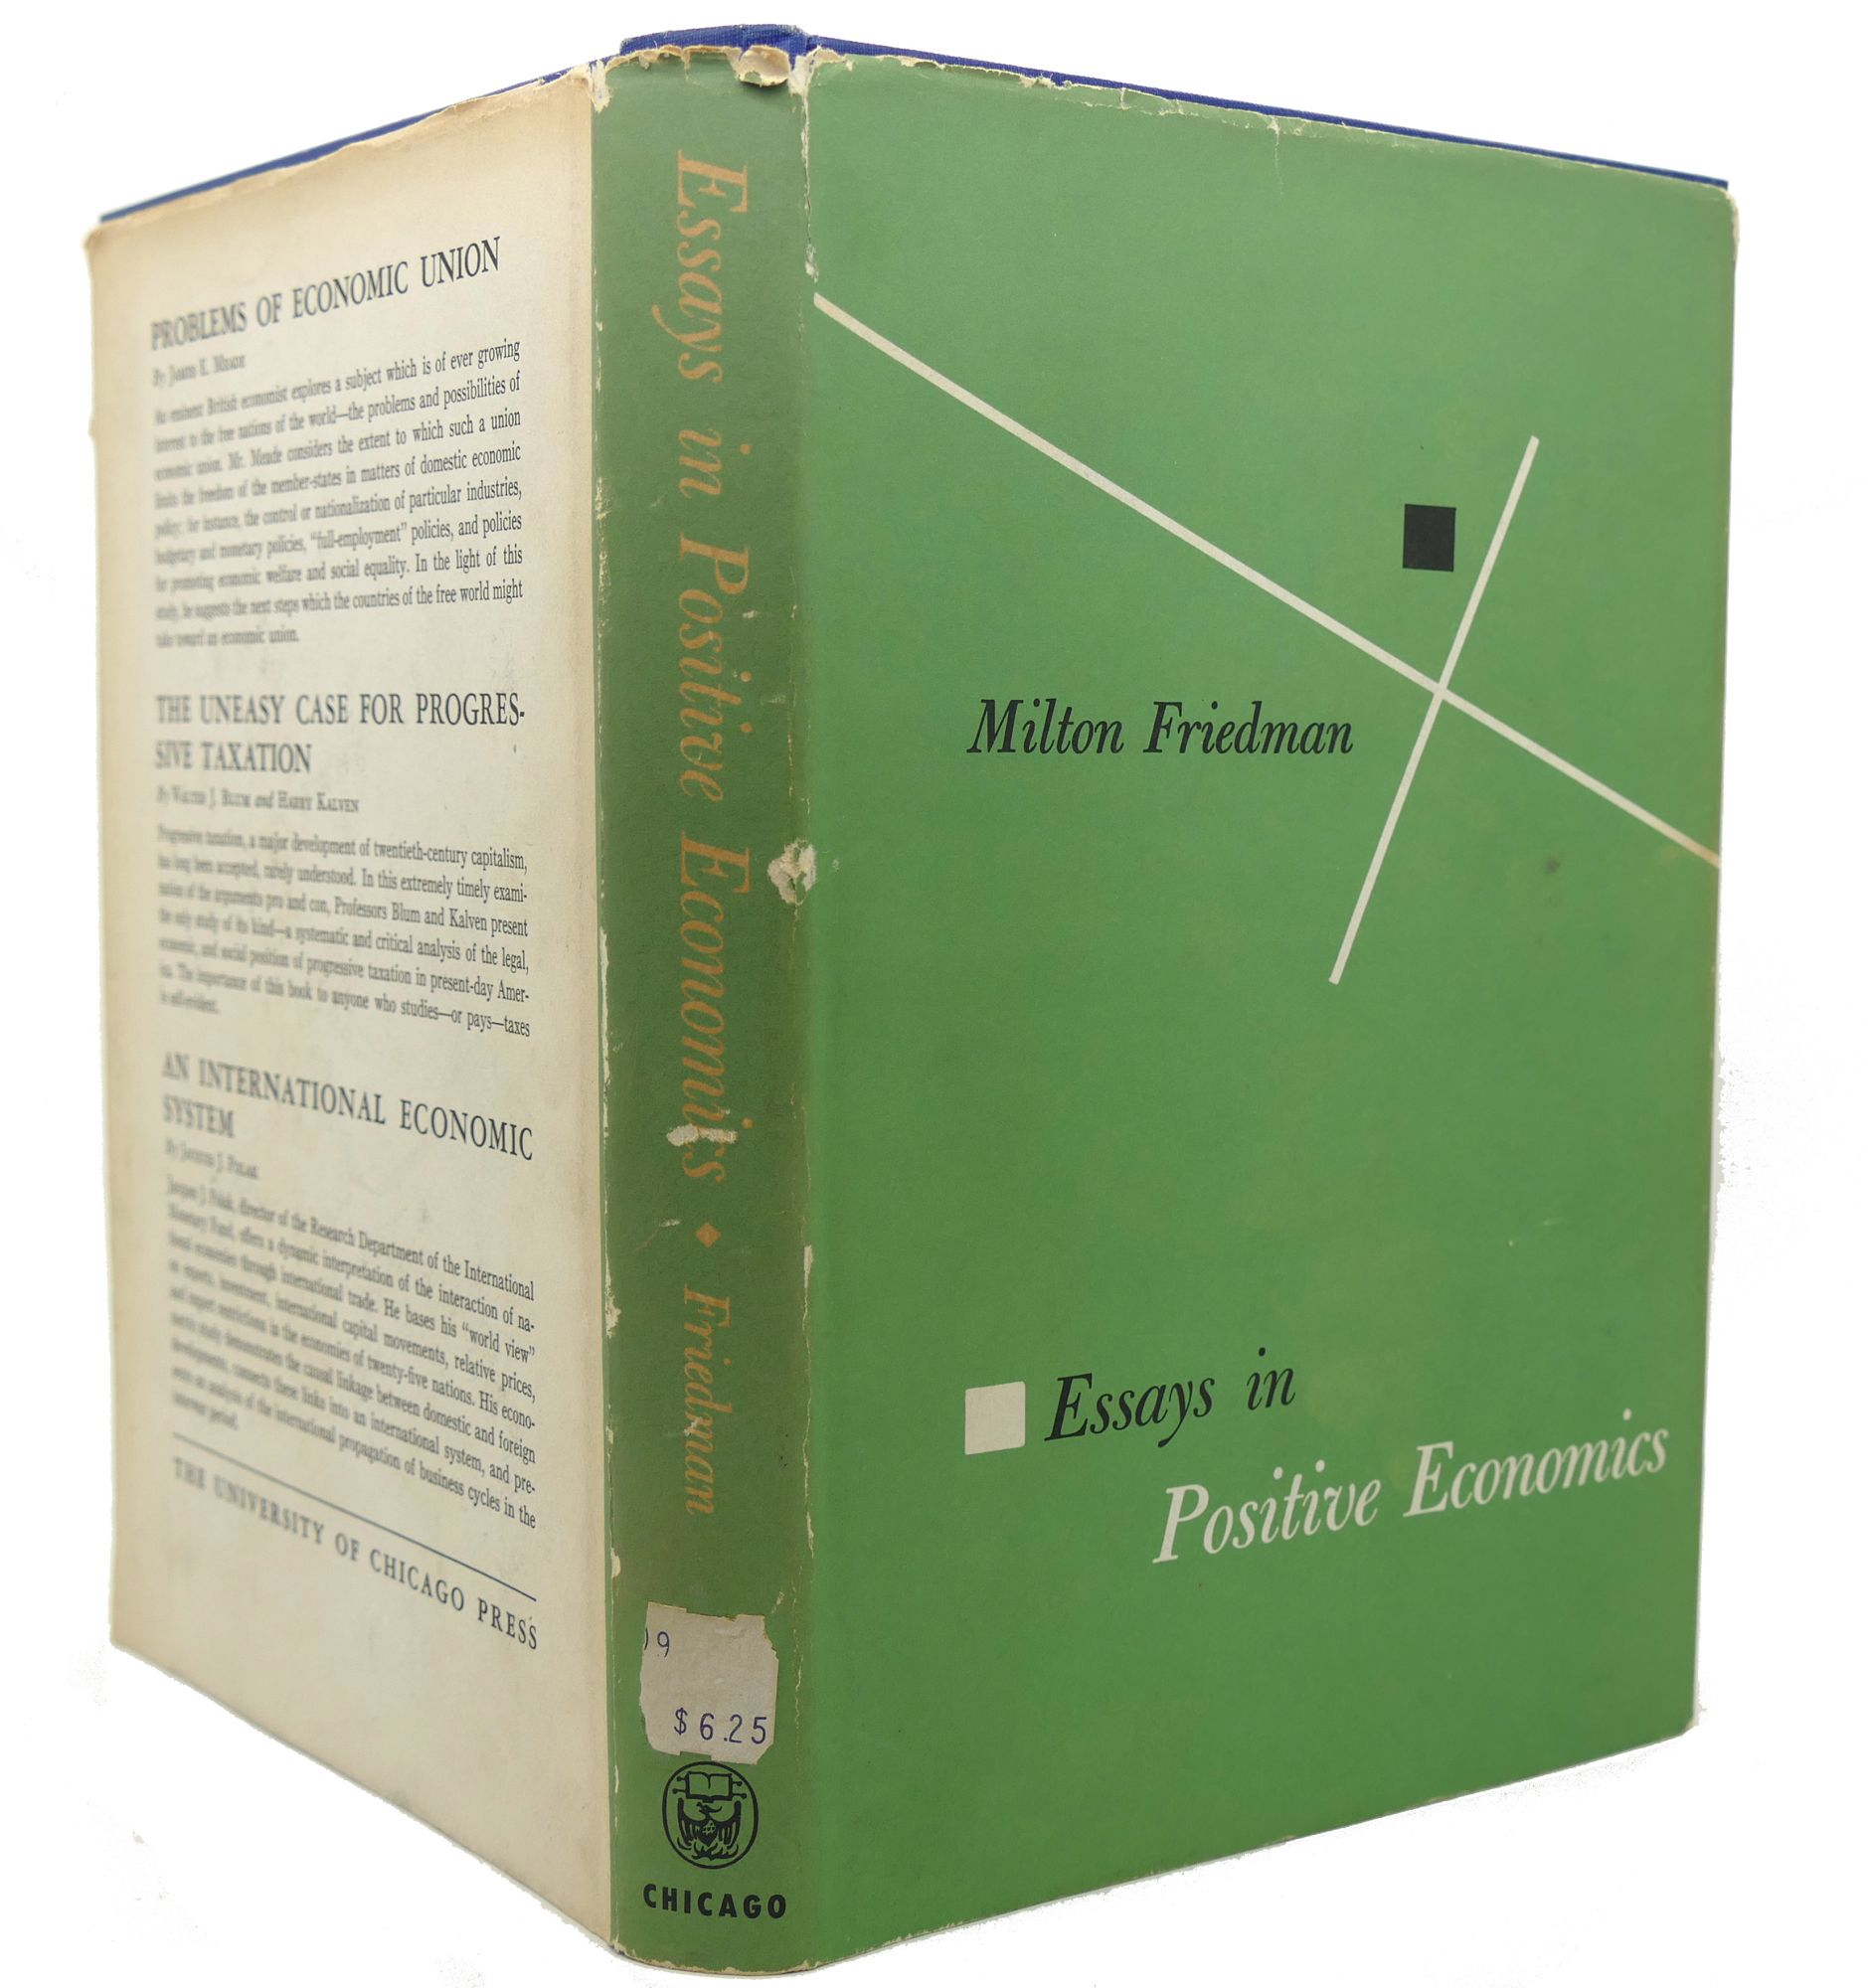 A Healthy Mind In A Healthy Body Essay Essays In Positive Economics  Milton Friedman  First Edition First  Printing Essay Samples For High School Students also Topics For Essays In English Essays In Positive Economics  Milton Friedman  First Edition  Essay Of Health